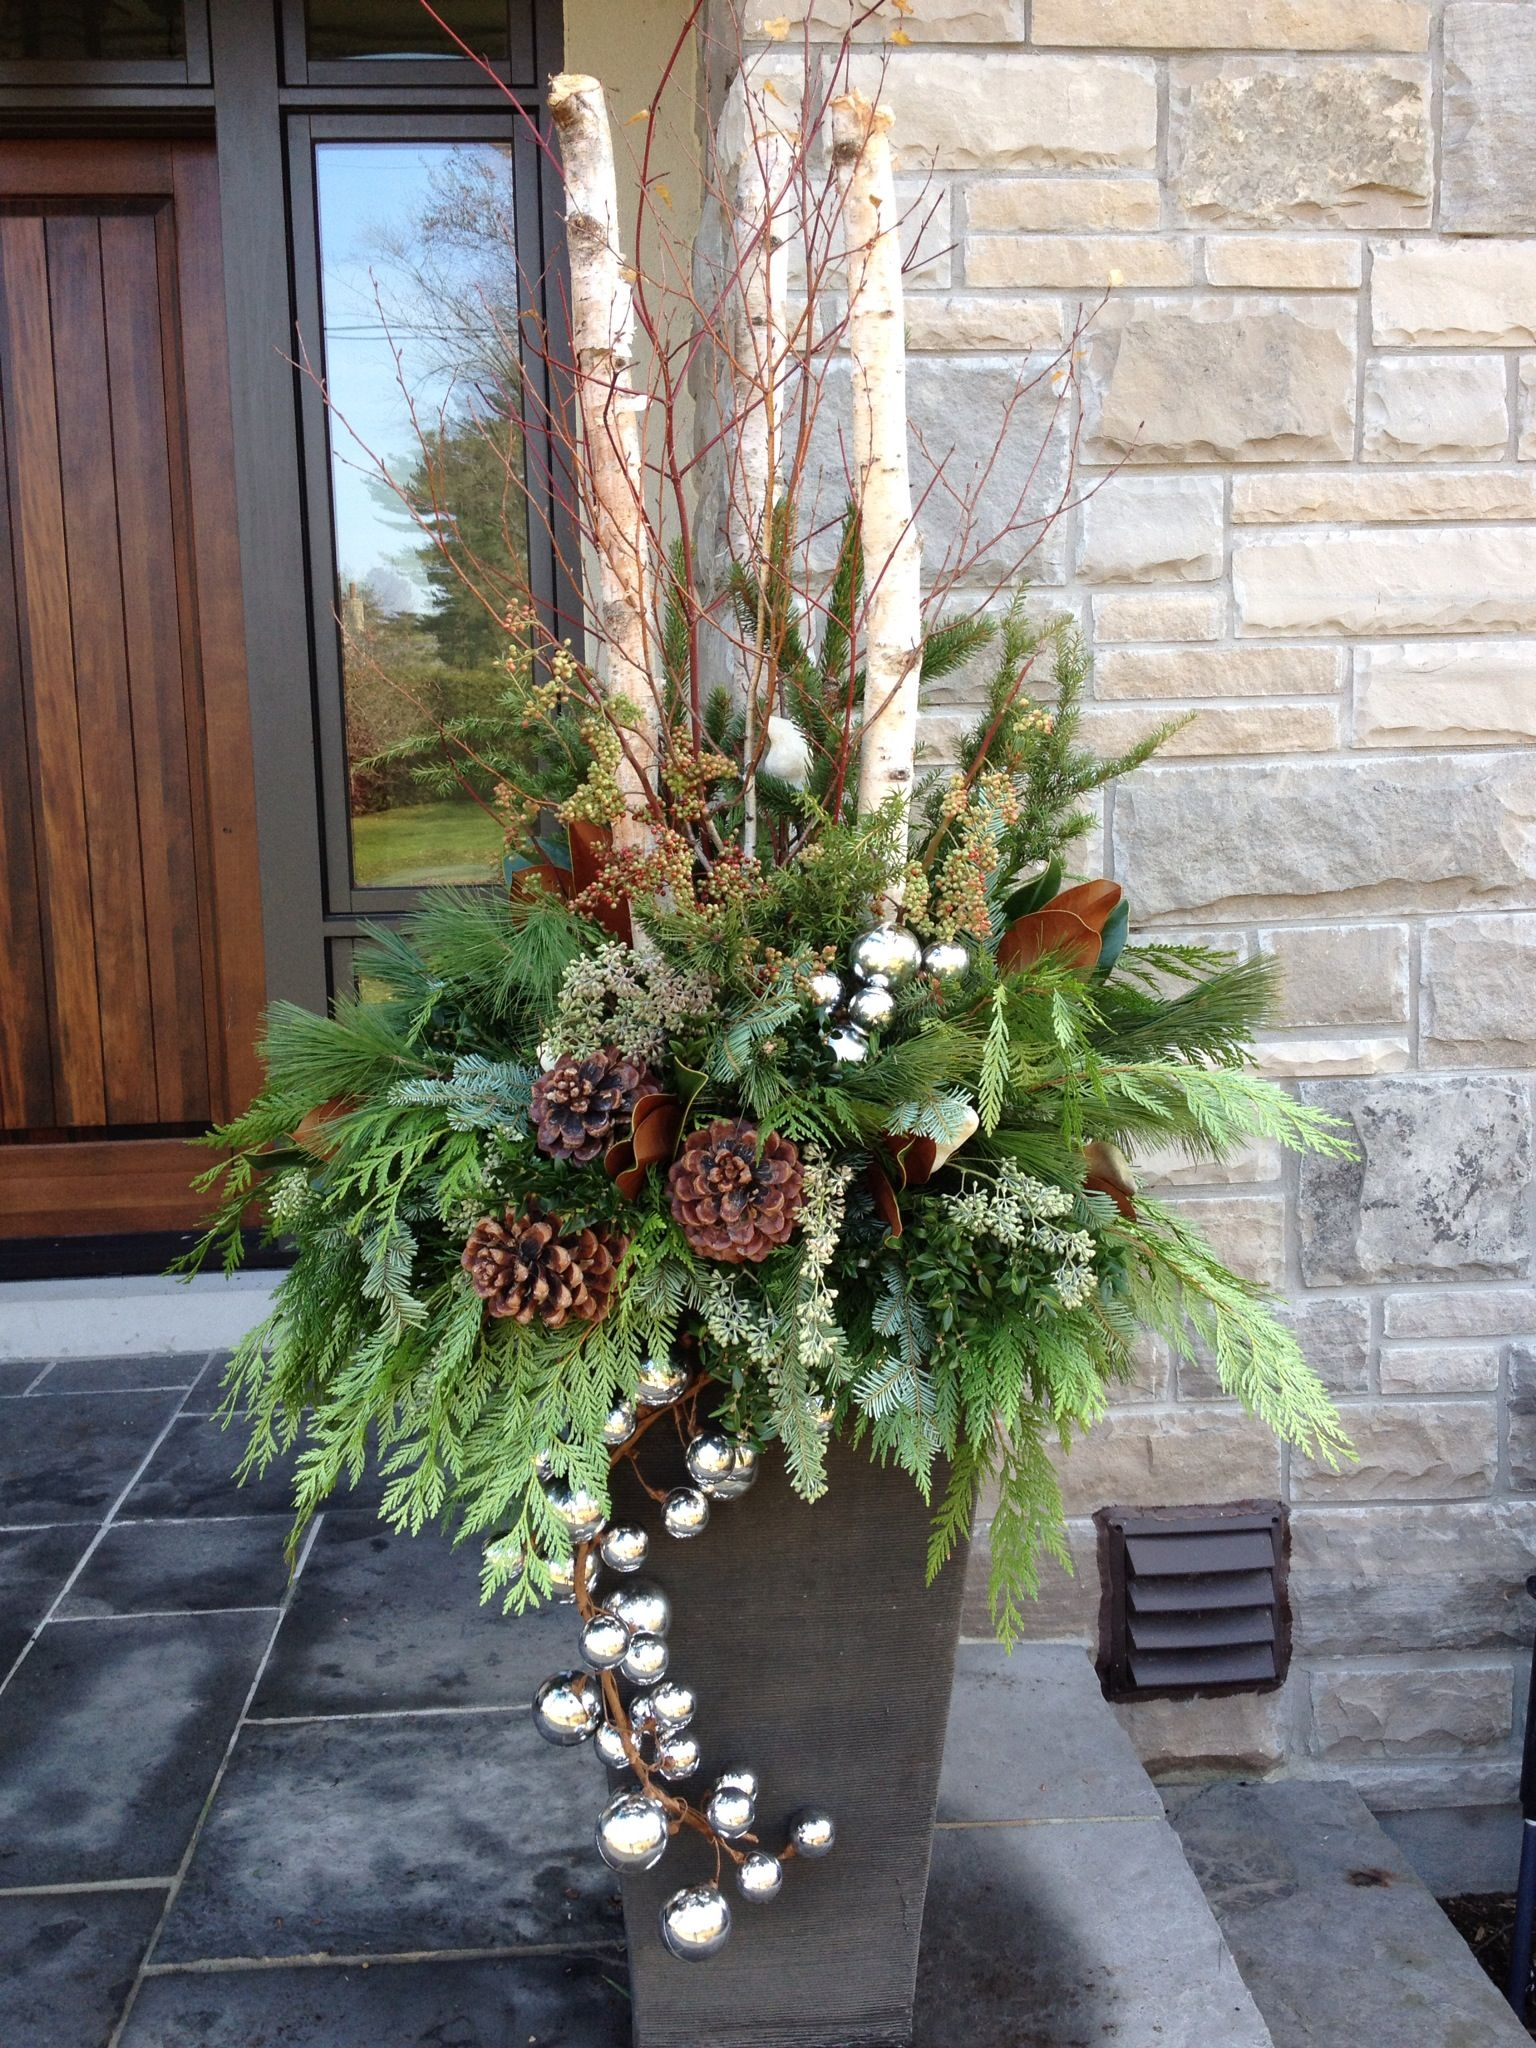 Christmas Outdoor Urn By Carla Mcgillivray Christmas Urns Christmas Planters Outdoor Christmas Planters